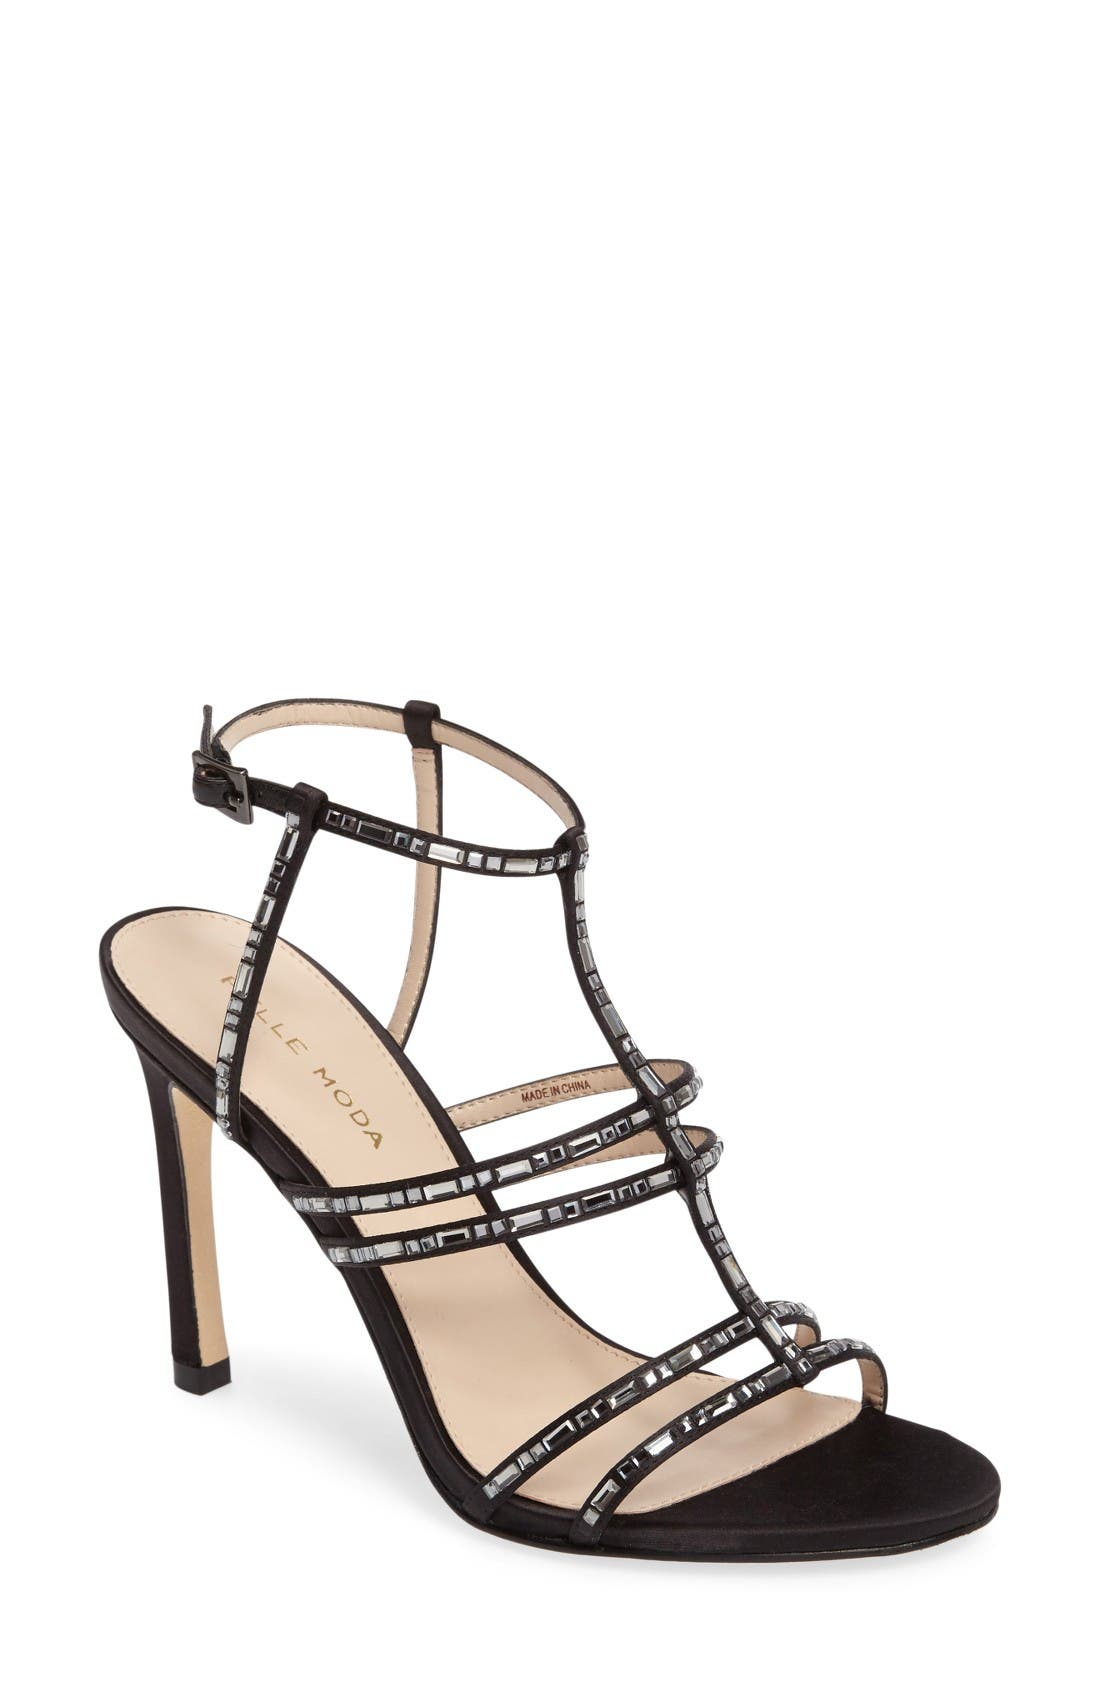 Essey 2 Sandal,                             Main thumbnail 1, color,                             Black Leather